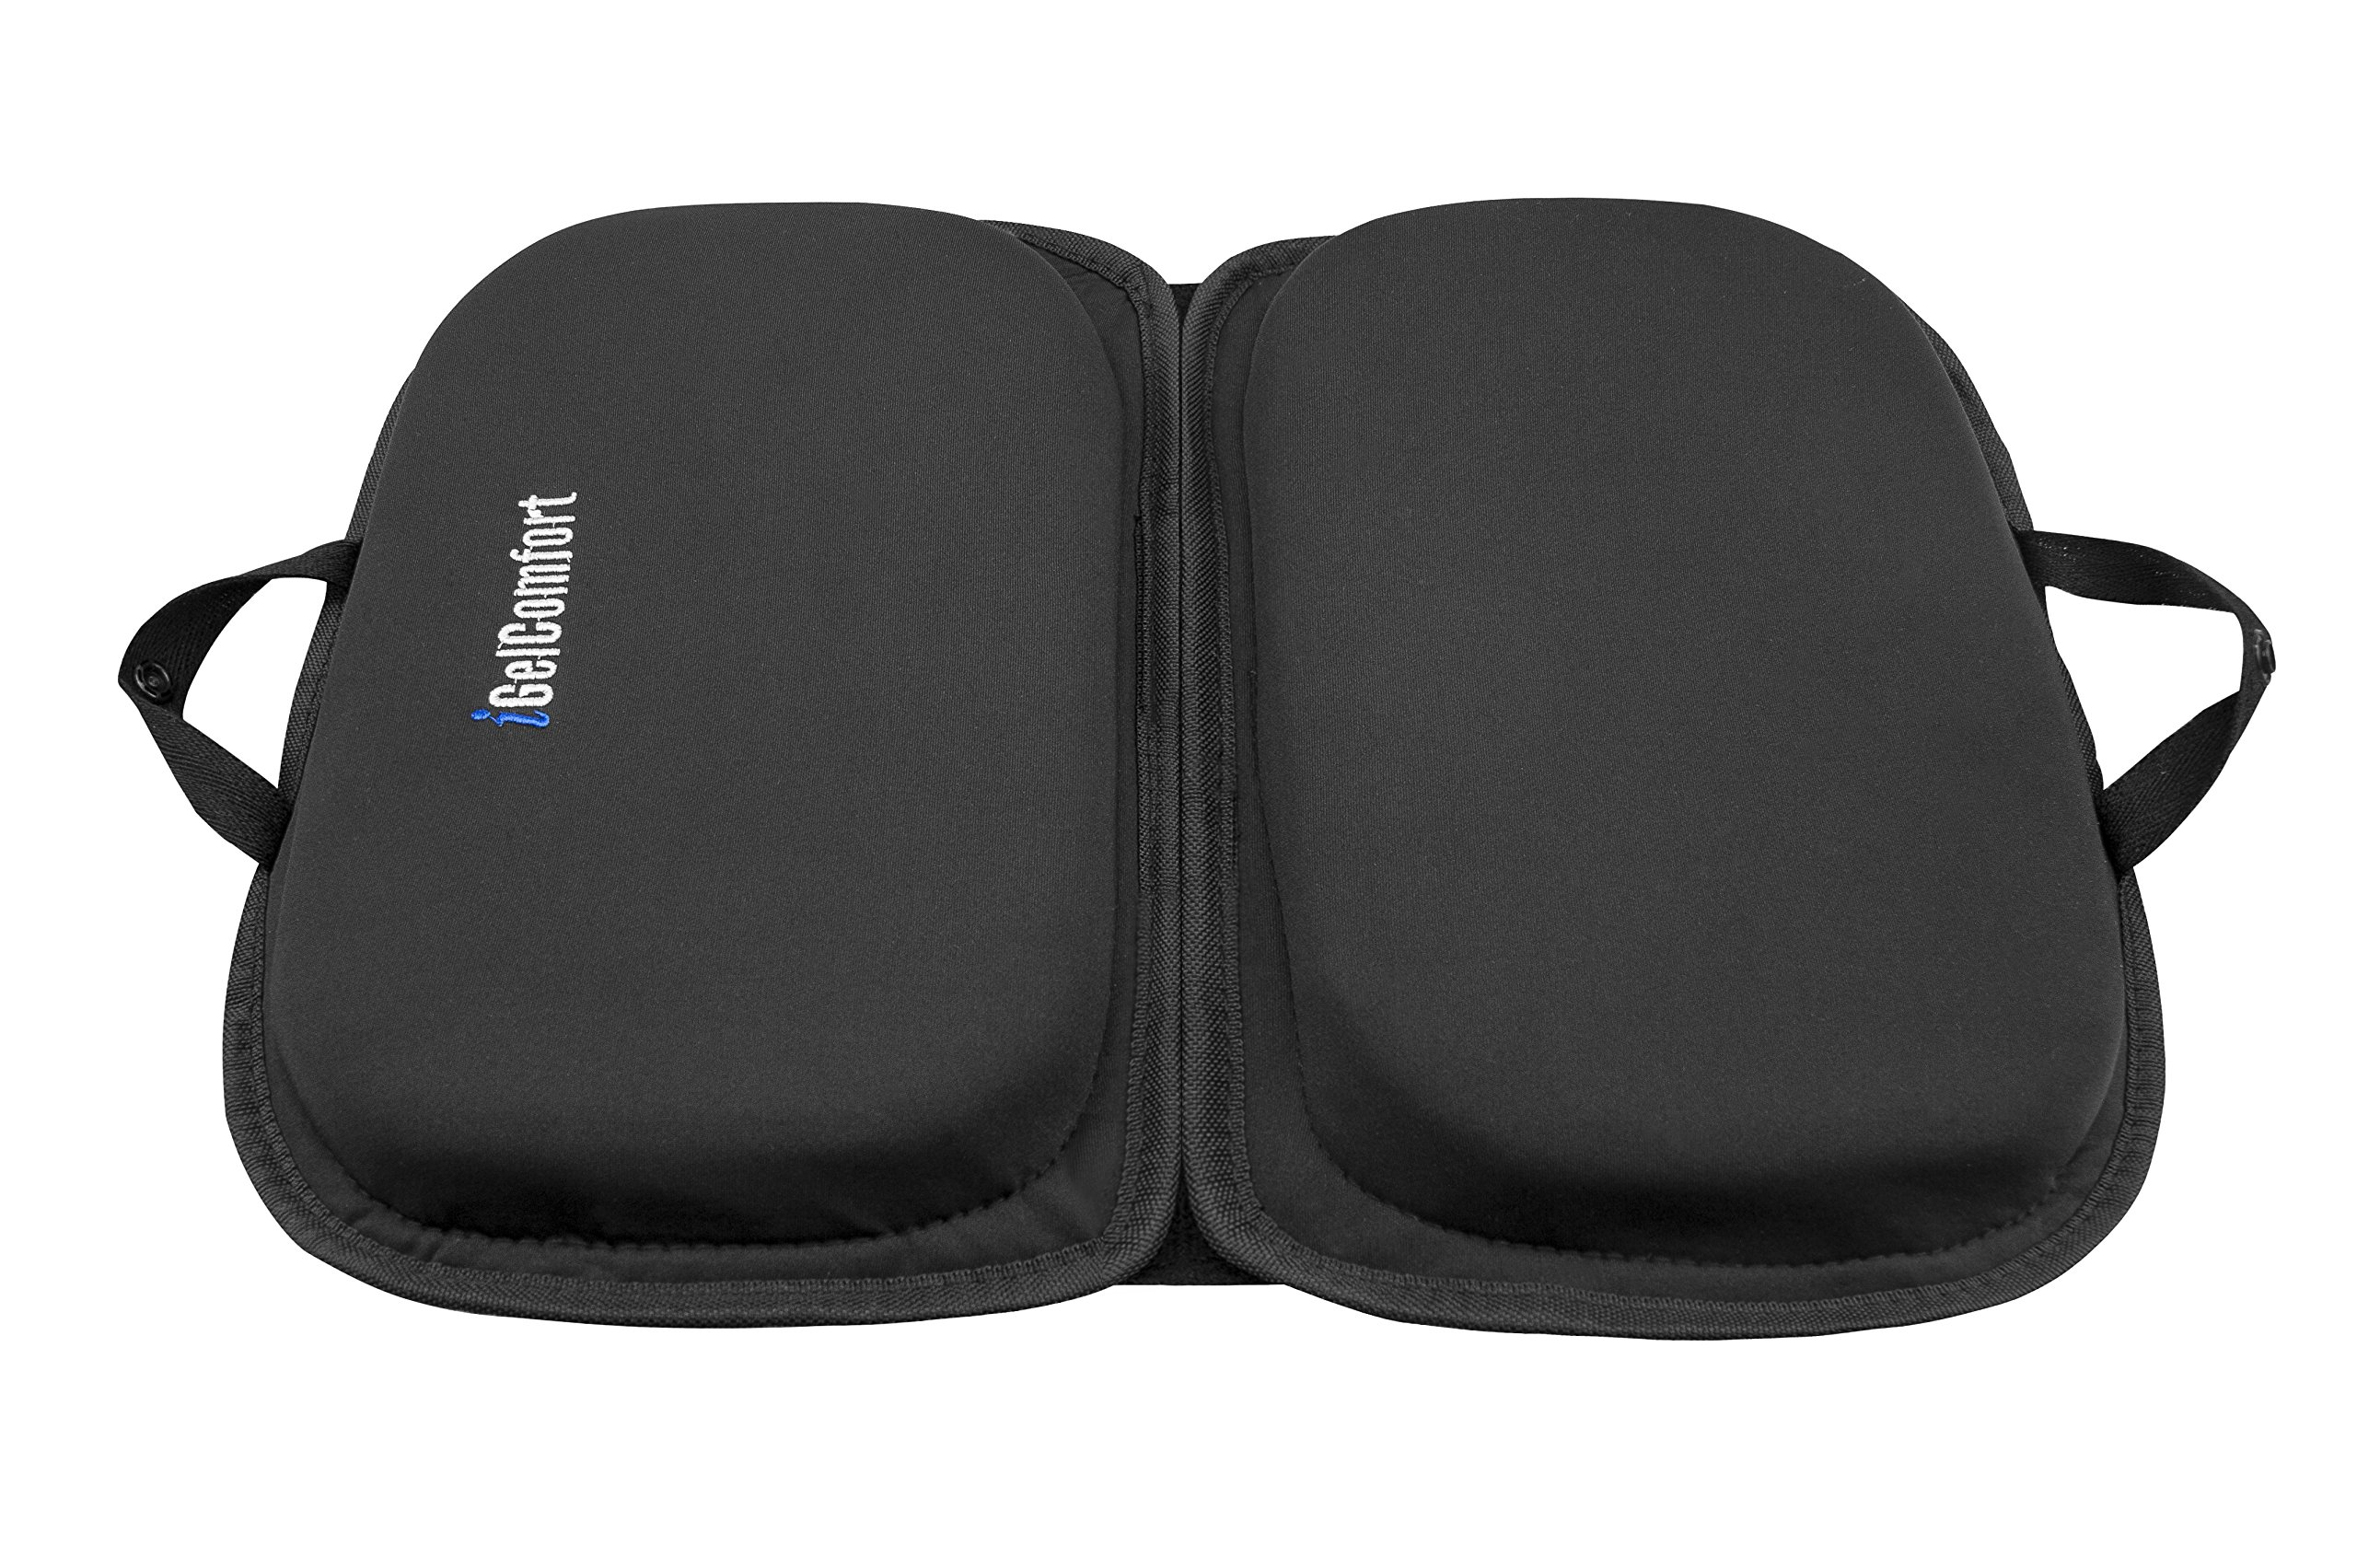 """Sojoy iGelComfort 3 in 1 Foldable Gel Seat Cushion Featured with Memory Foam (A Must-Have Travel Cushion! Smart, Easy Travel Cushion) (Size: 18.5"""" x 15'' x 2'')"""